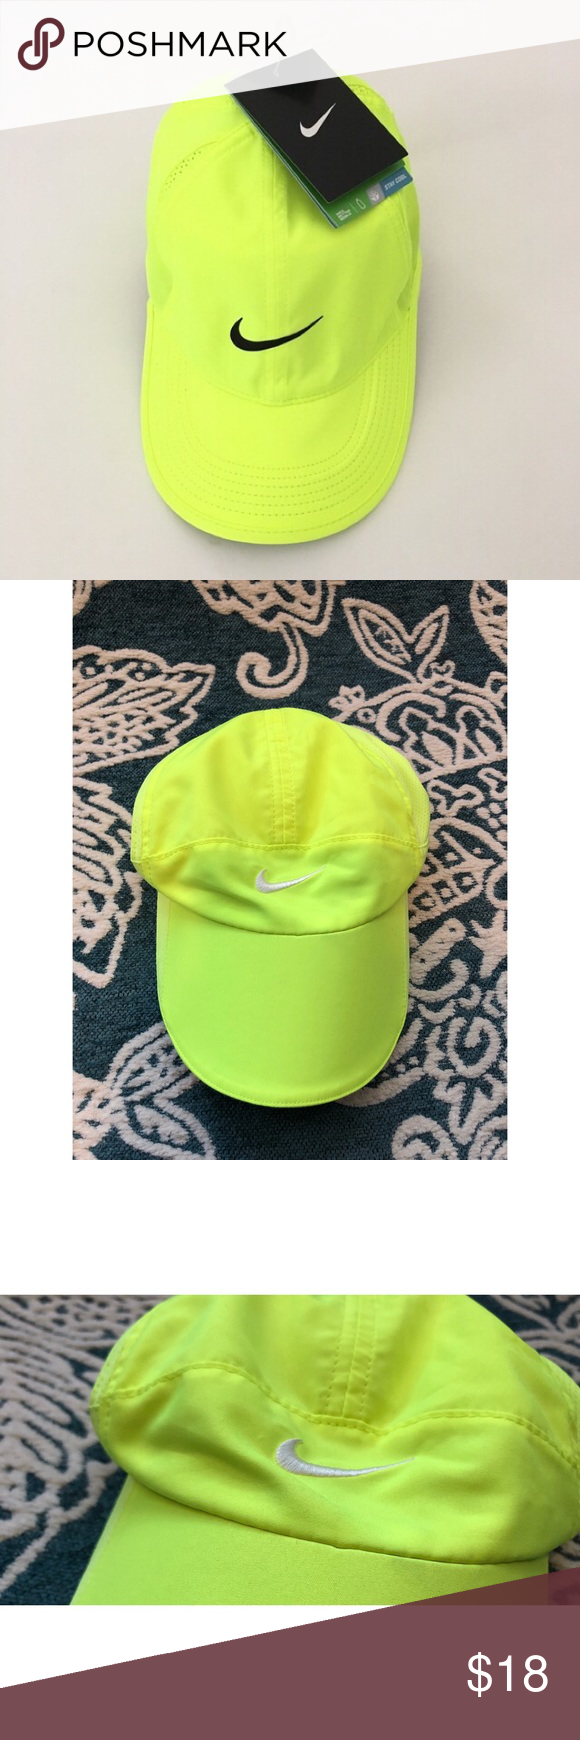 Nike Neon Featherlight Hat Nike Neon Nike Accessories Clothes Design